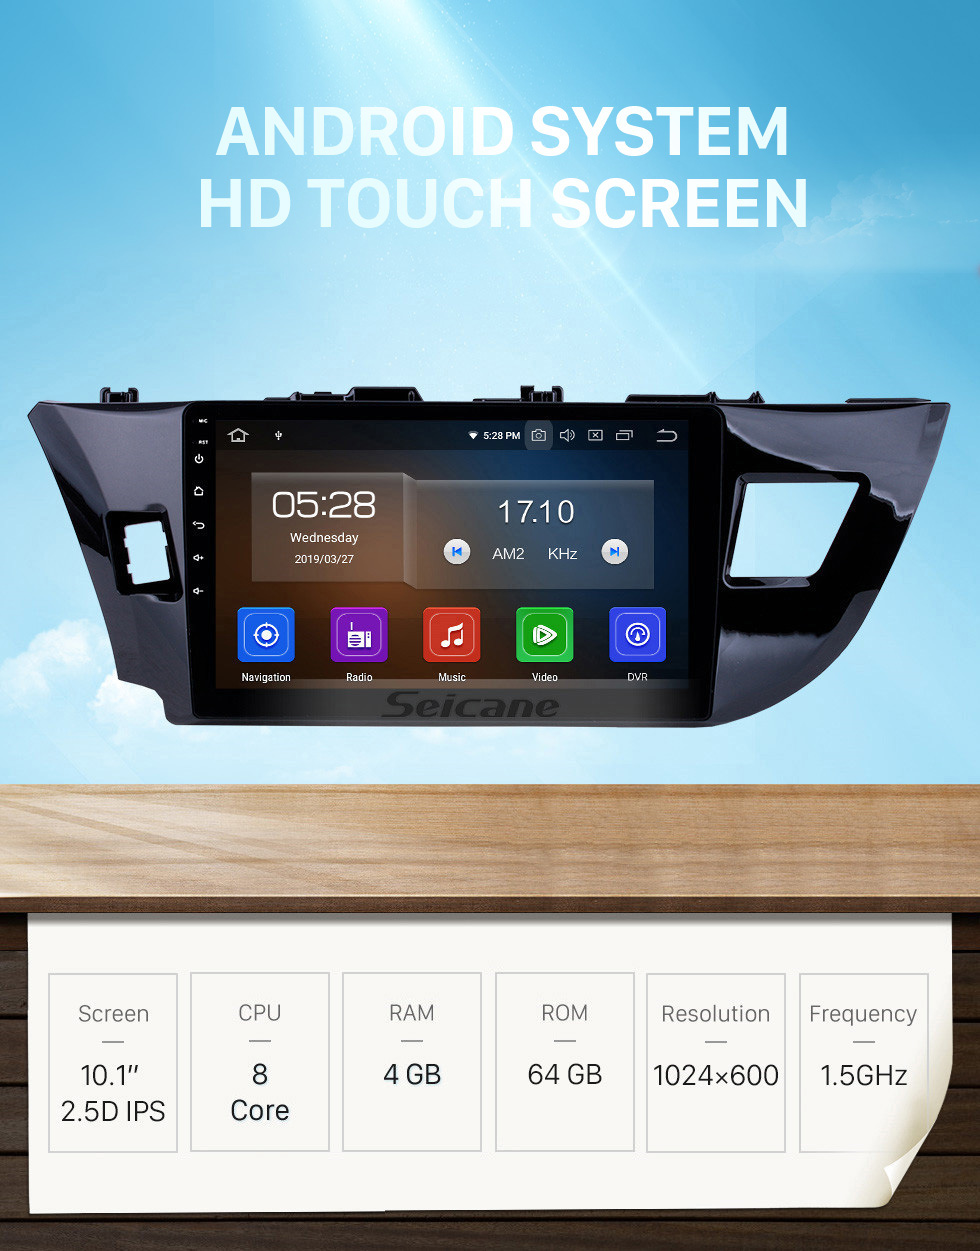 Seicane OEM 10.1 inch Android 10.0 HD Touchscreen Bluetooth Radio for 2014 Toyota Levin with GPS Navigation USB FM auto stereo Wifi AUX support DVR TPMS Backup Camera OBD2 SWC